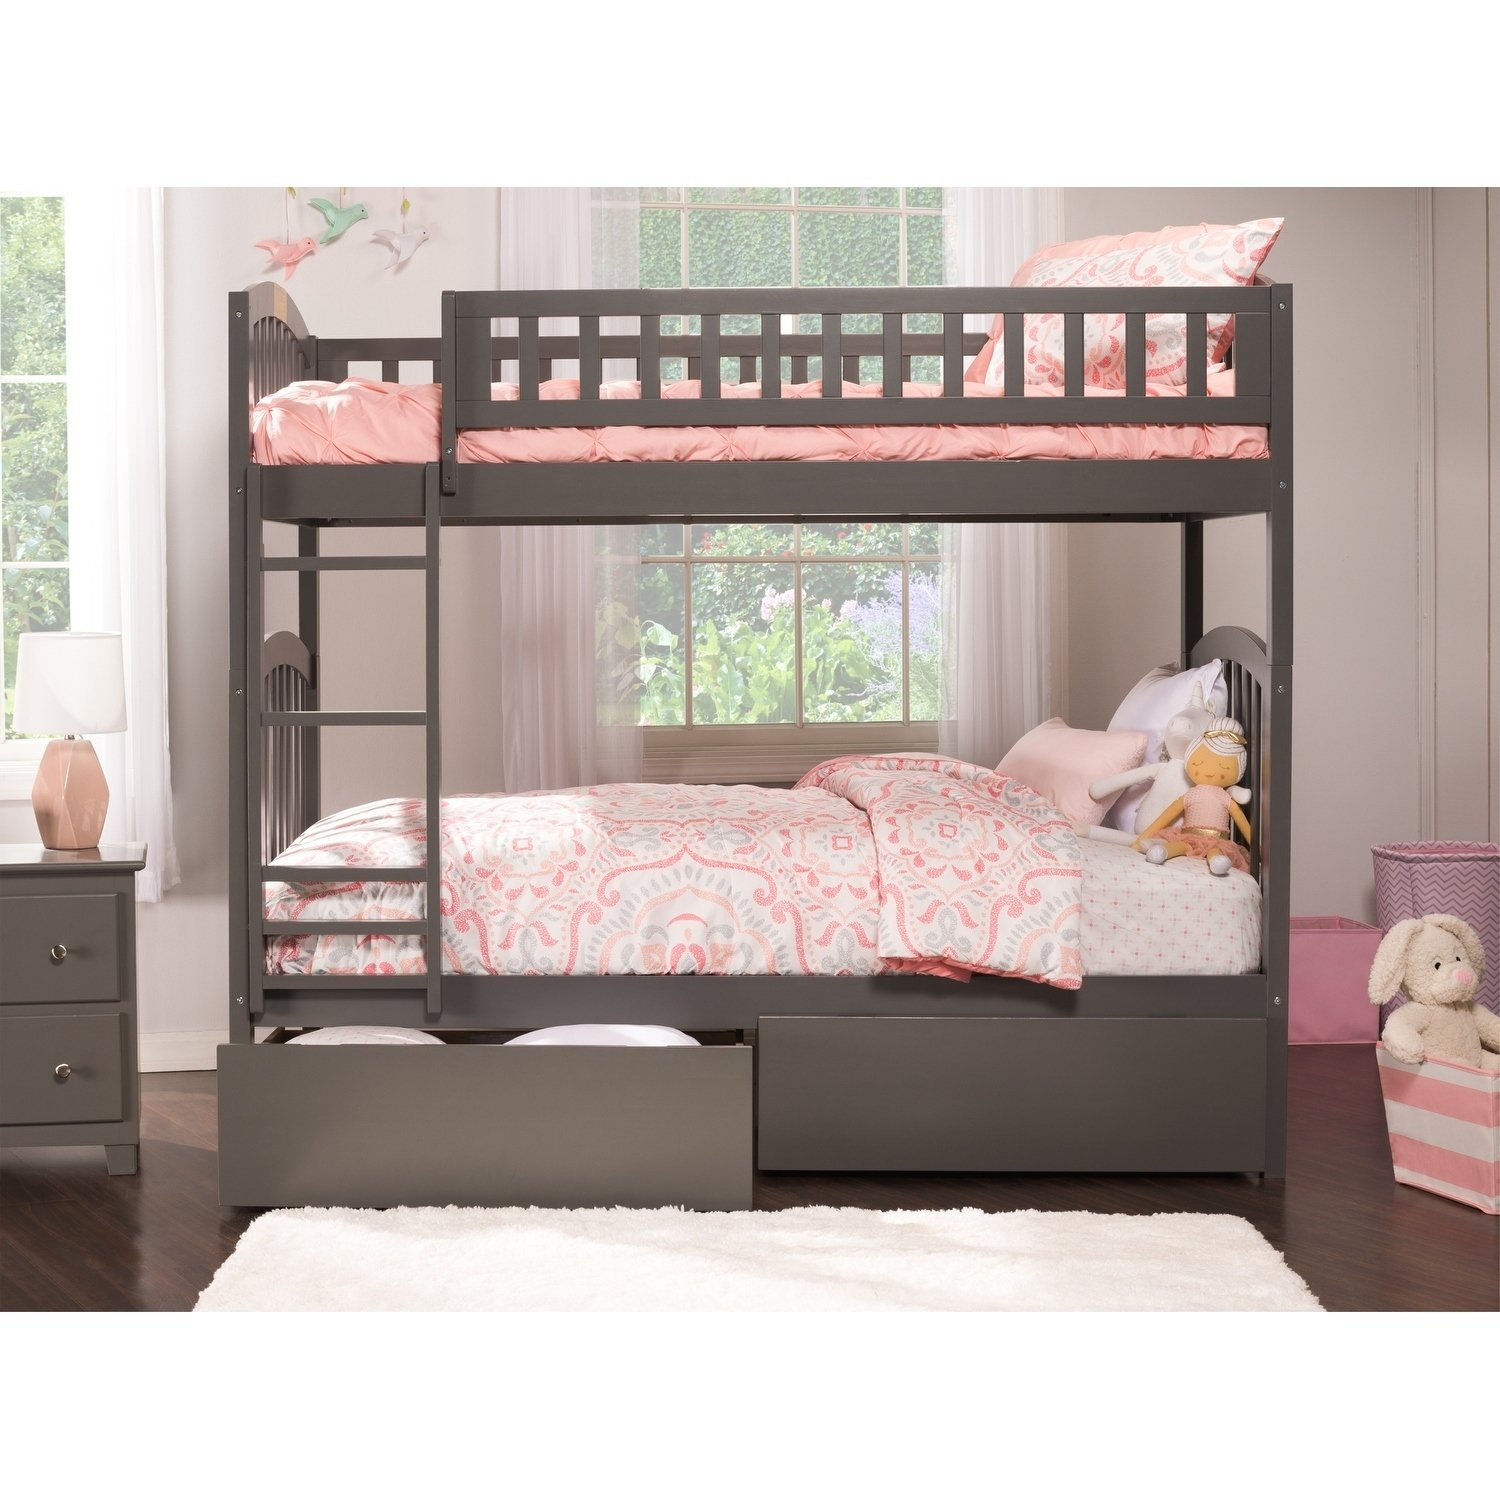 Richland Bunk Bed Twin Over Twin With 2 Urban Bed Drawers In Grey